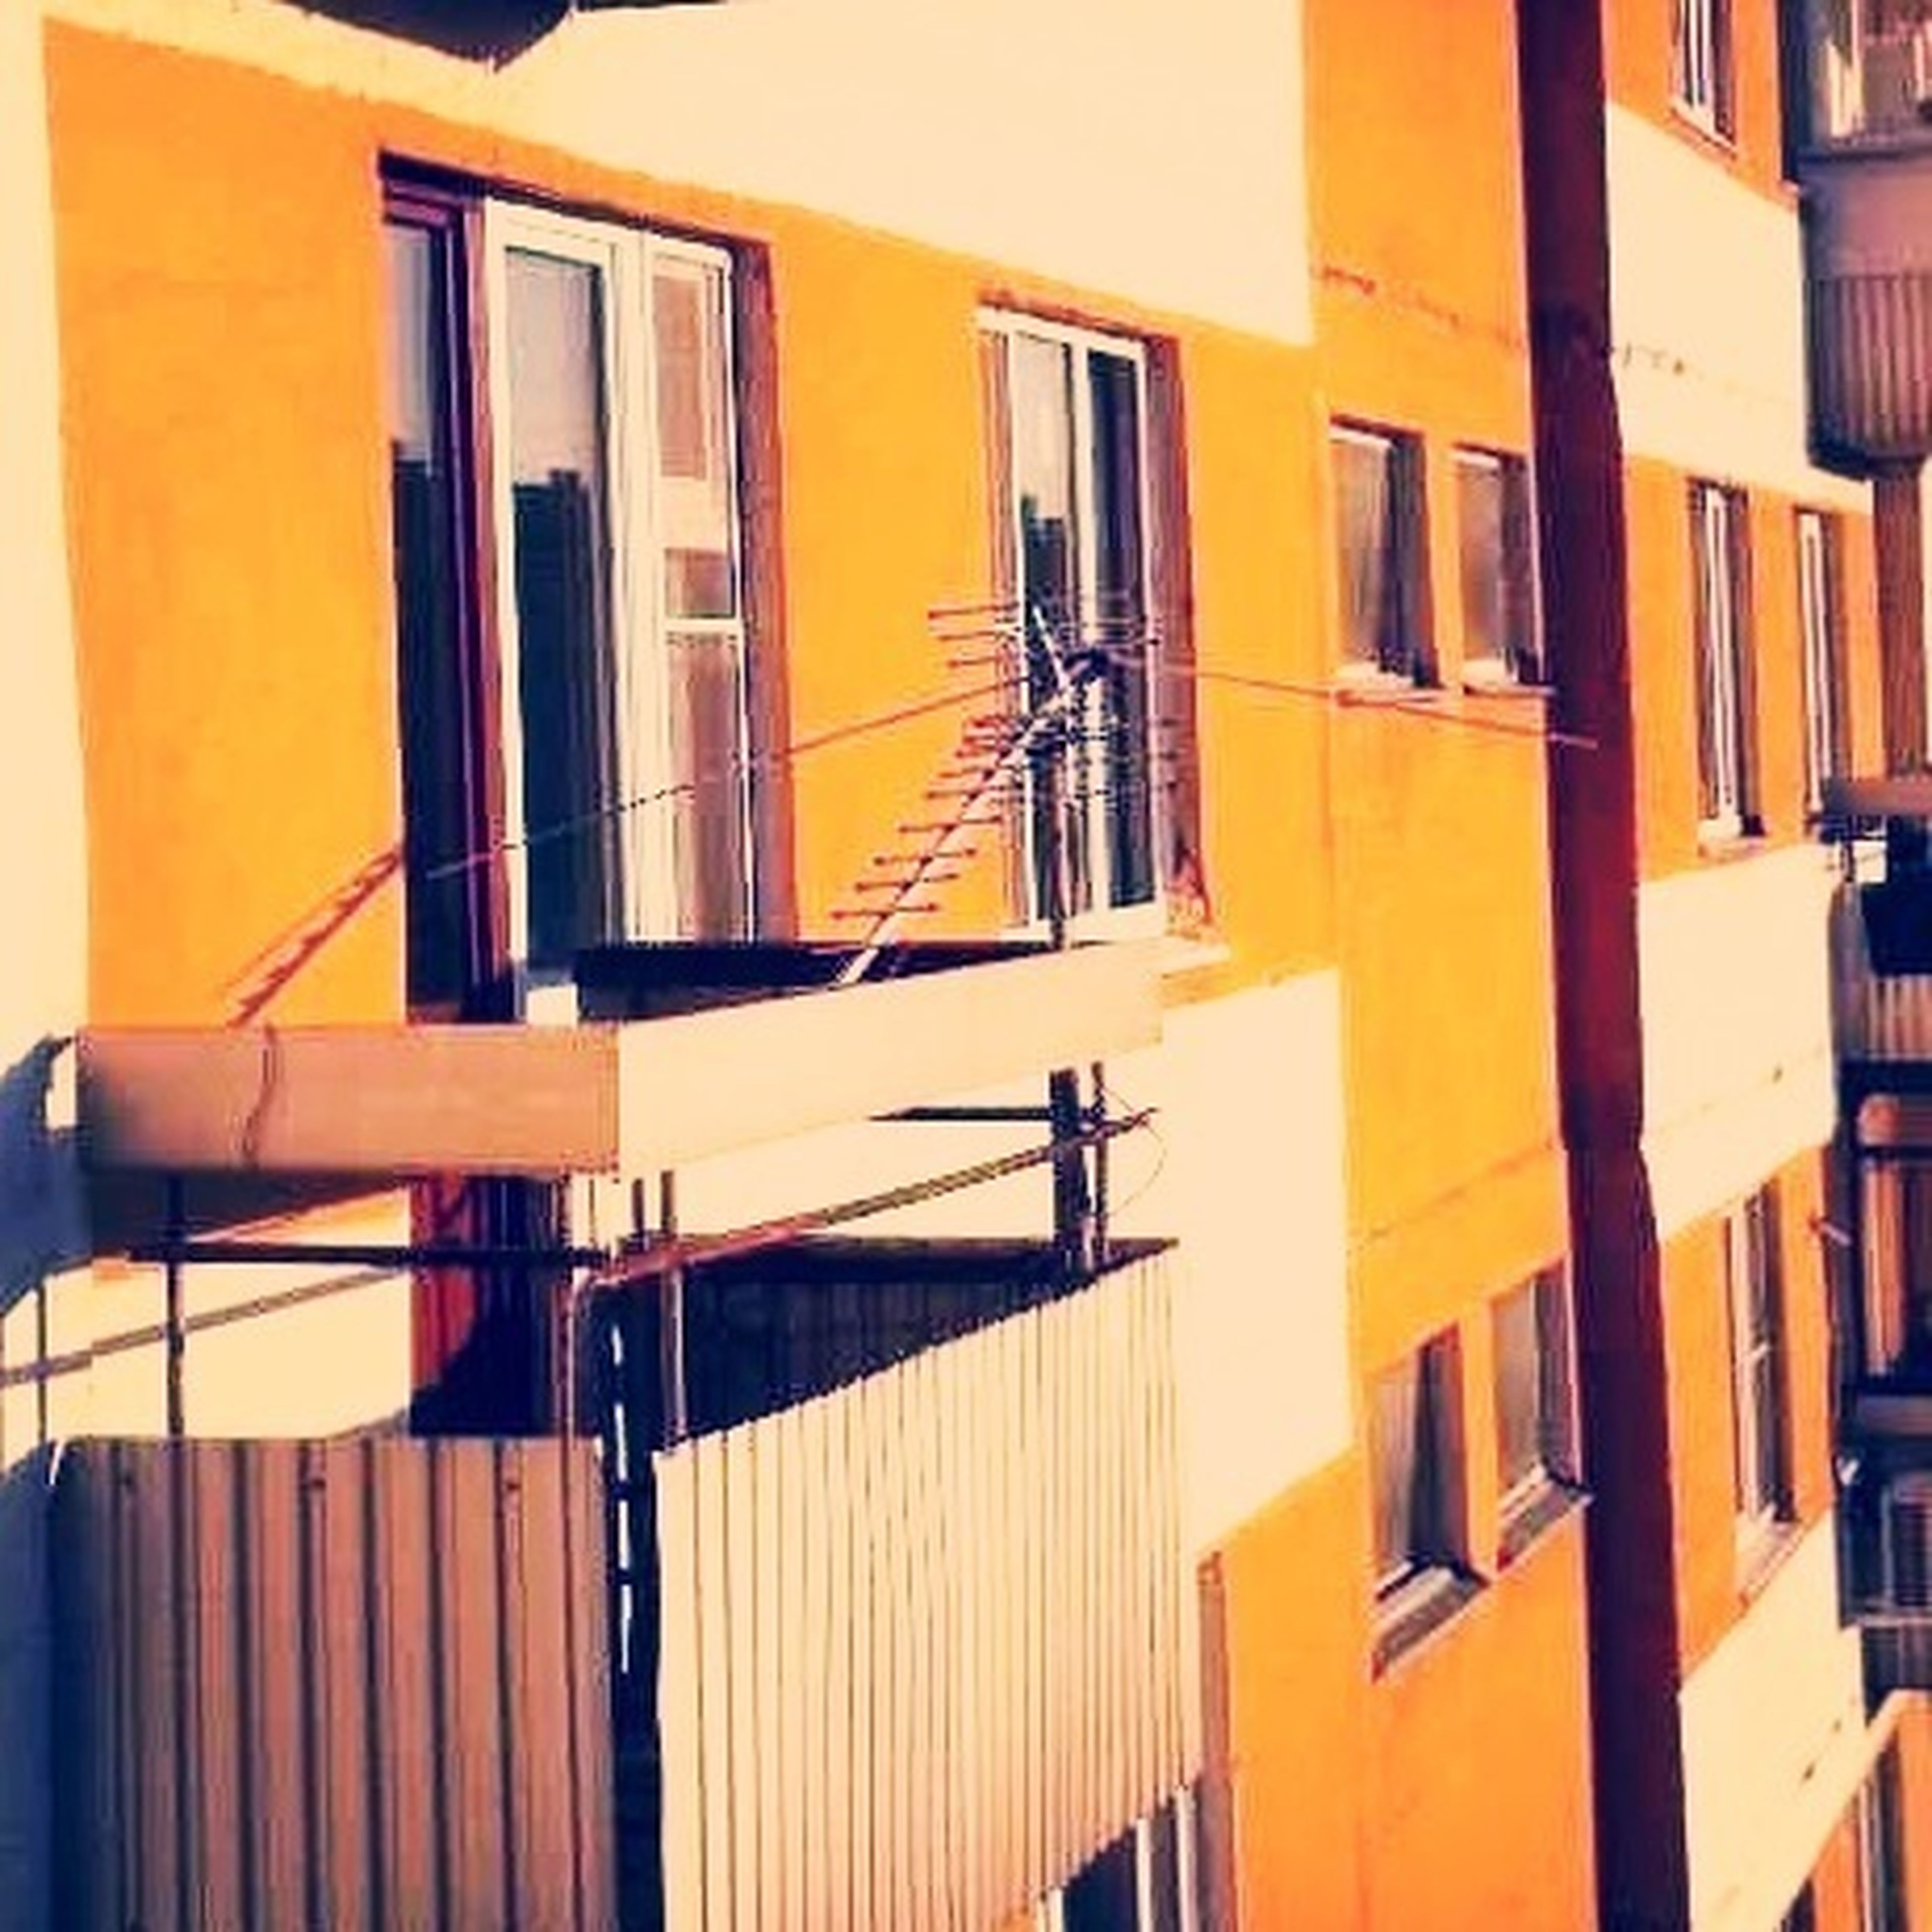 architecture, building exterior, built structure, window, residential building, residential structure, balcony, building, house, low angle view, apartment, yellow, city, railing, day, no people, outdoors, exterior, facade, in a row